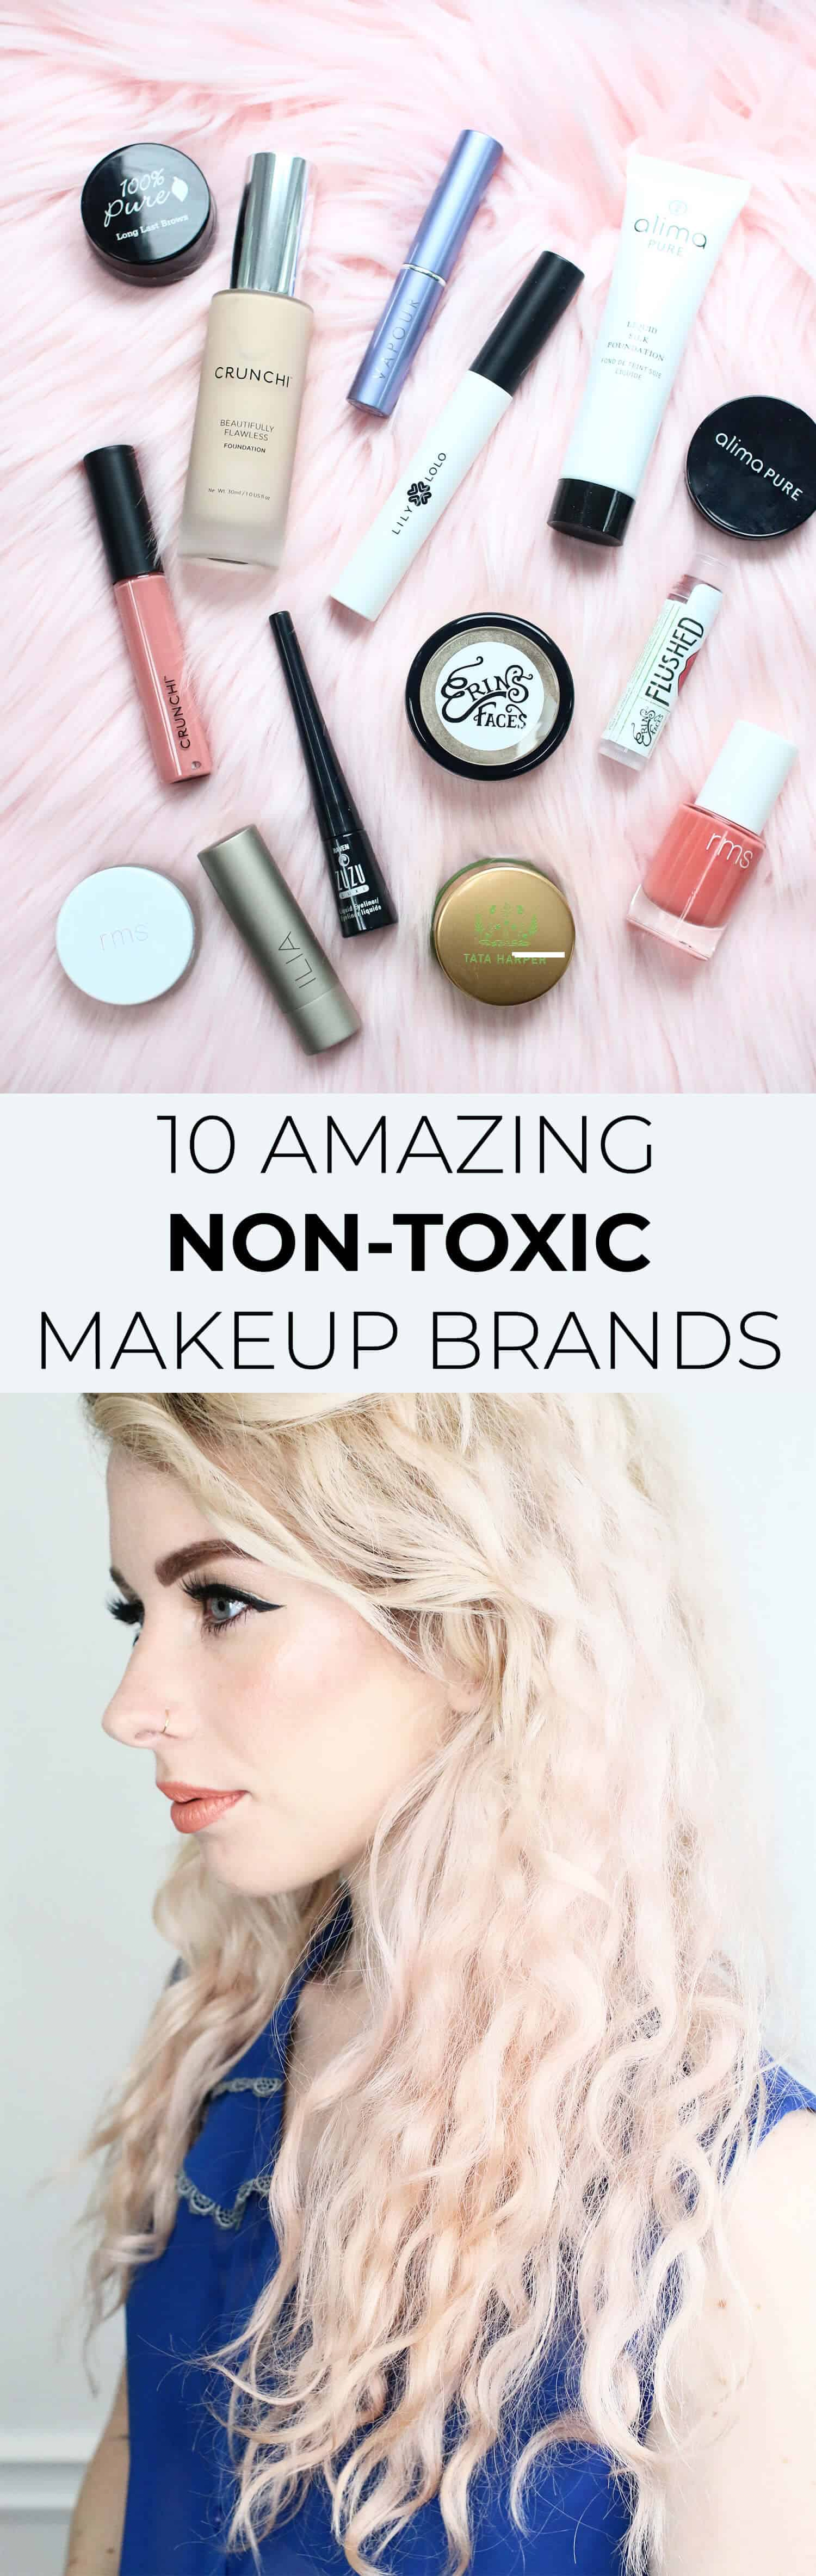 10 Nontoxic Makeup Brands To Try A